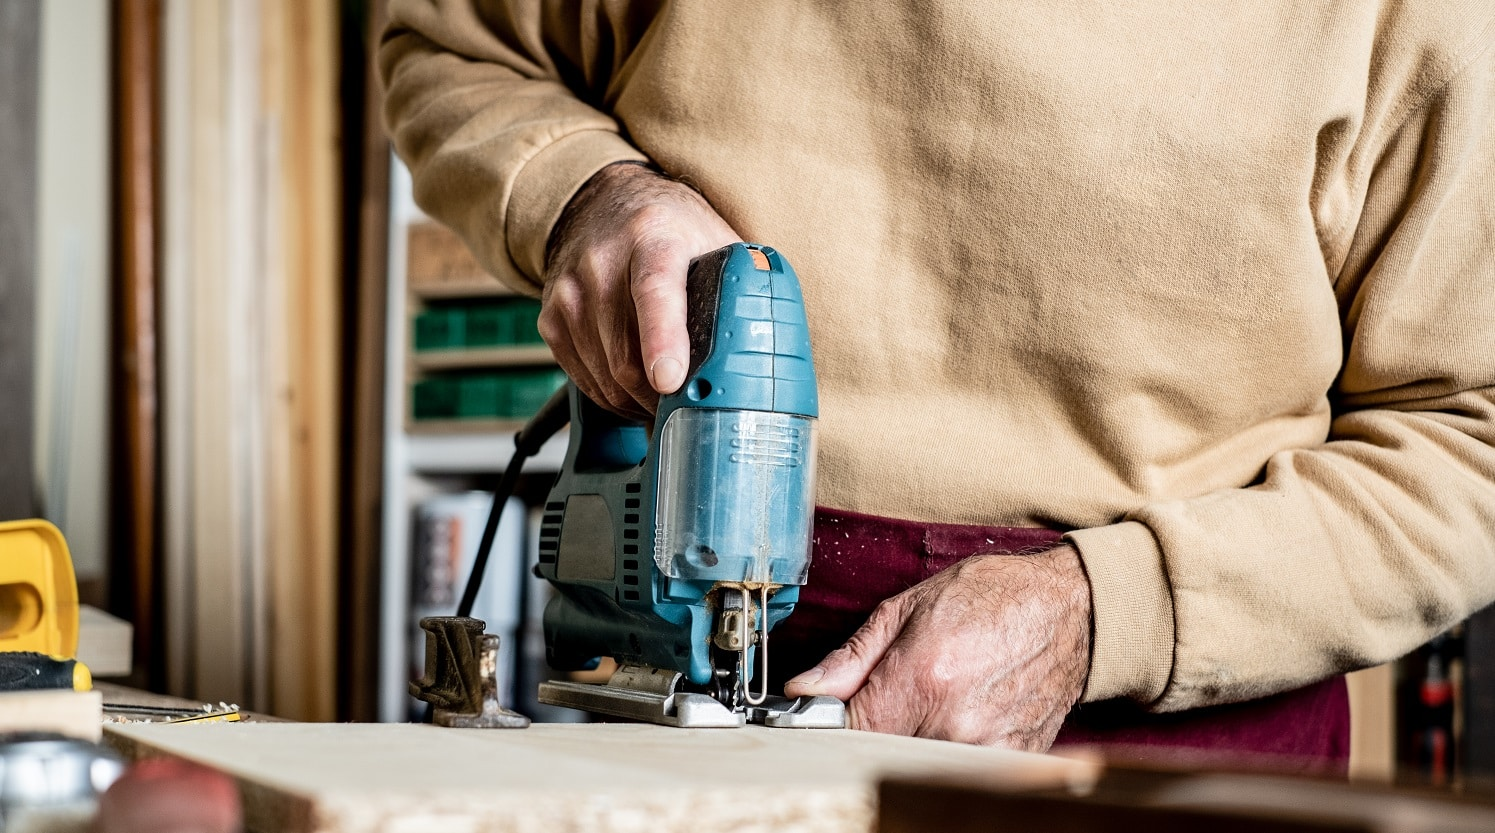 Carpenter's hands with electric jigsaw close-up. Work in a carpentry workshop. A man cuts plywood with an electric jigsaw. Electric tool for woodworking.